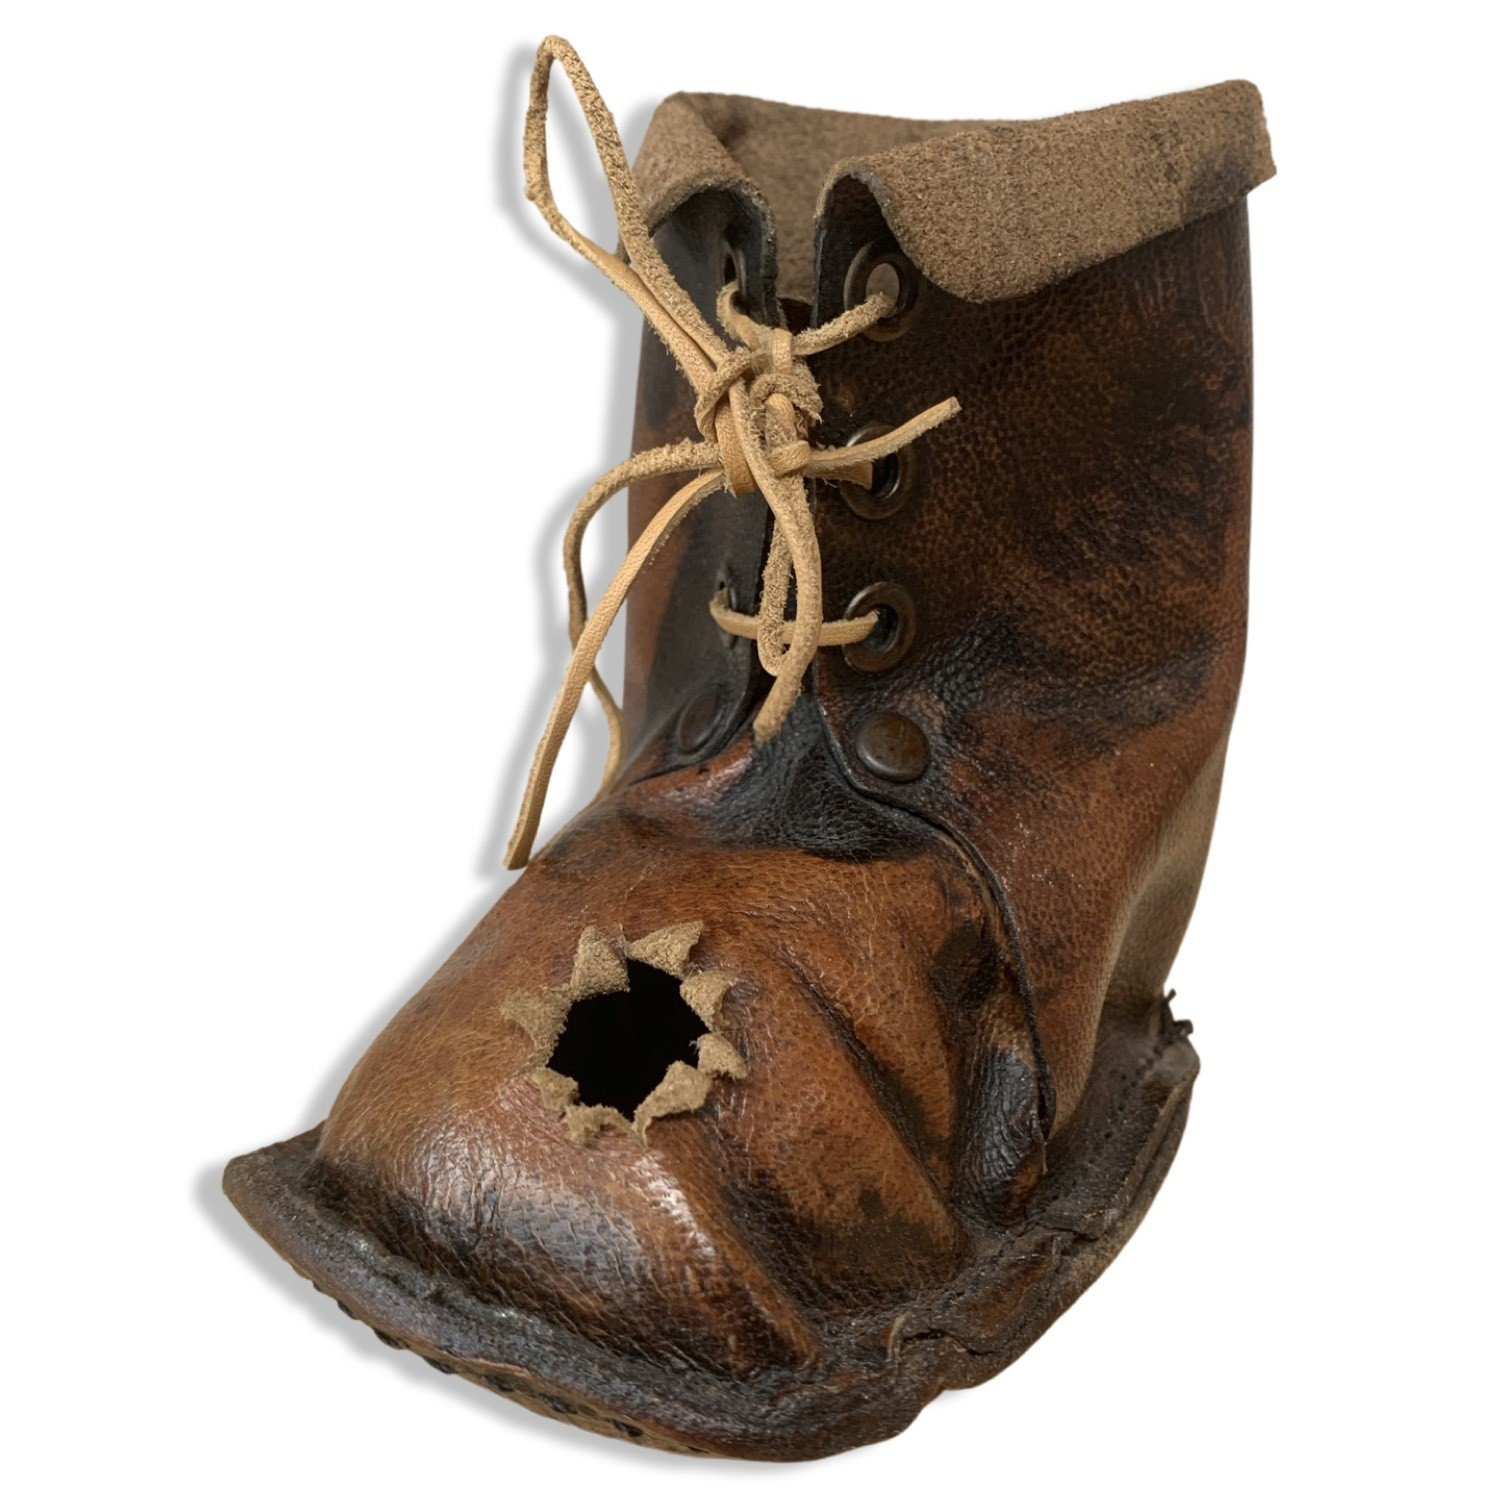 Leather Pen Holder - Soldier Boot With Bullet Hole